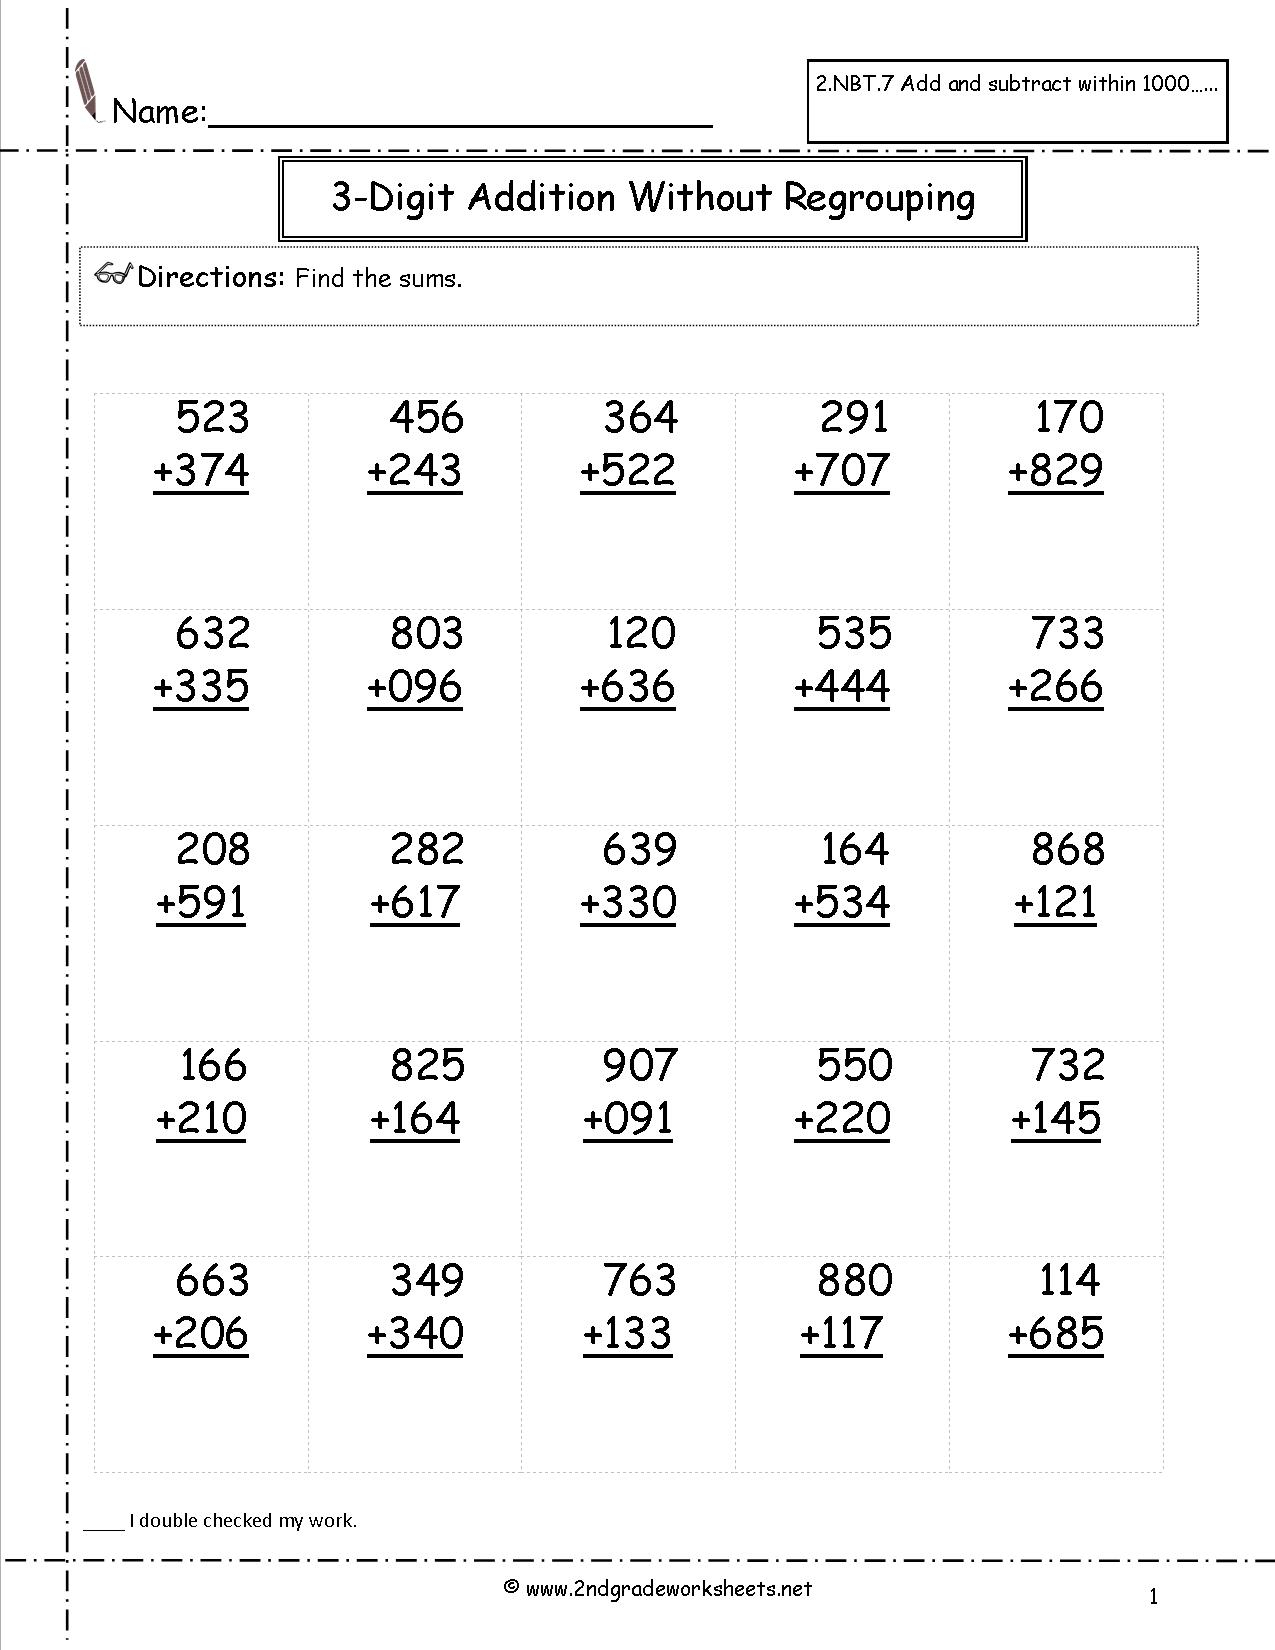 Worksheet ~ Addition And Subtraction Activities For 2Nd